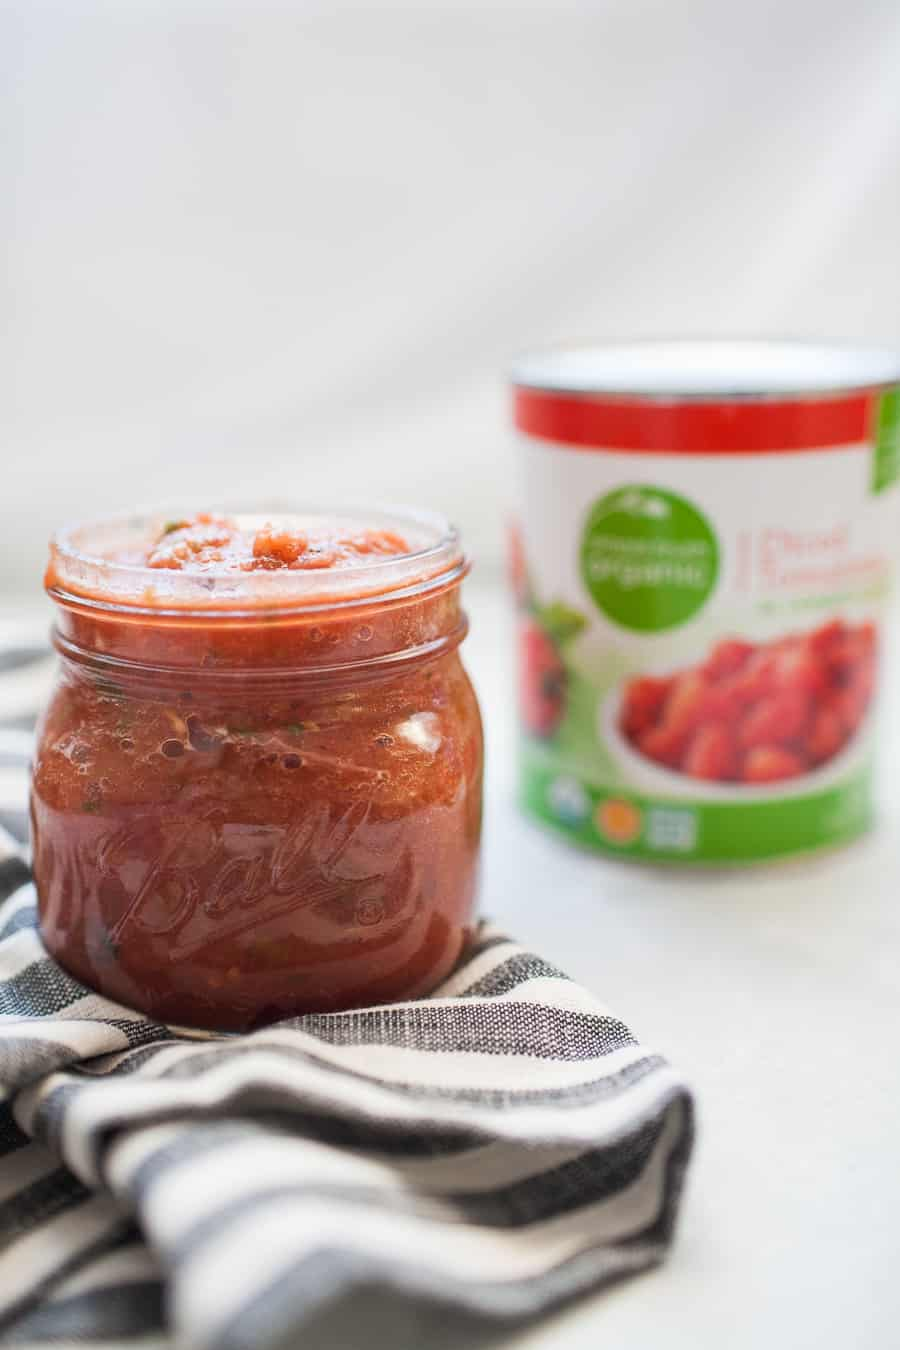 Five Minute Blender Salsa is the easiest way to enjoy fresh, delicious restaurant style salsa at home! One batch makes enough for a crowd and can be made in minutes with a blender or food processor. See how easy (and delicious) this restaurant style salsa is!